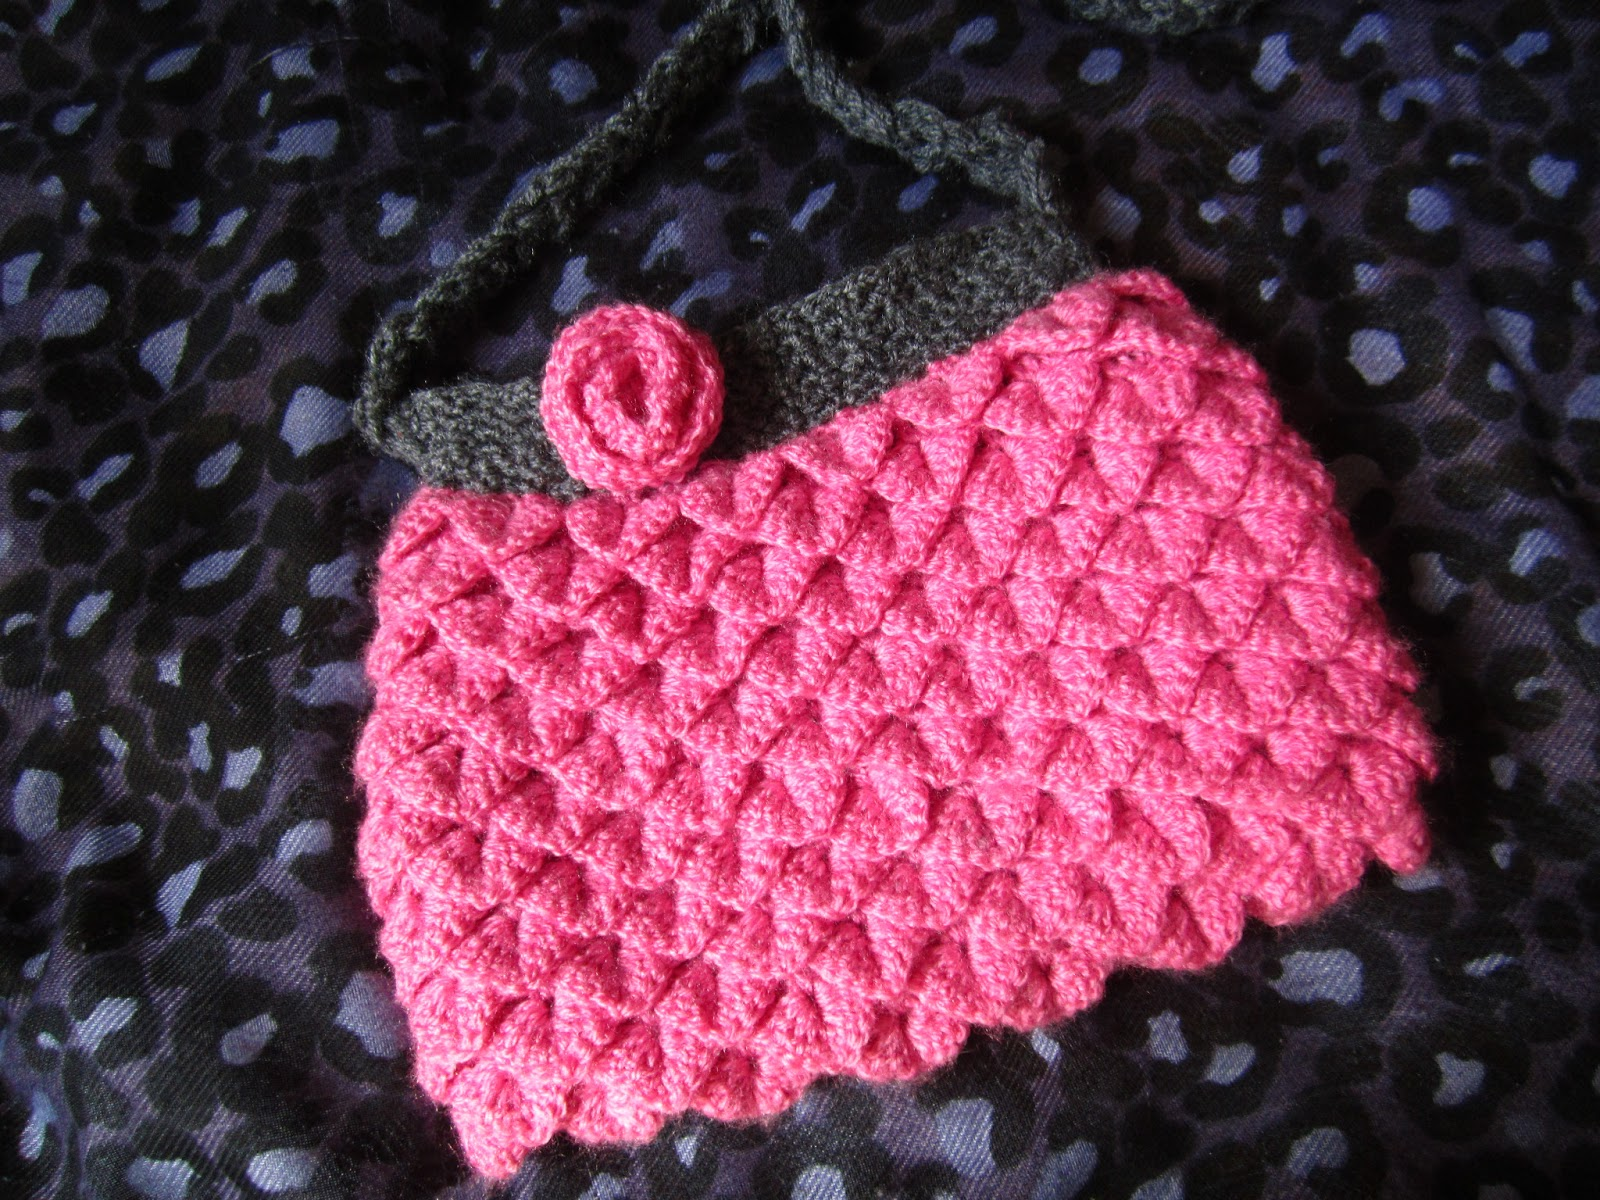 Crochet Zipper Stitch : Somehow managed to add lining and zipper to the bag using this ...